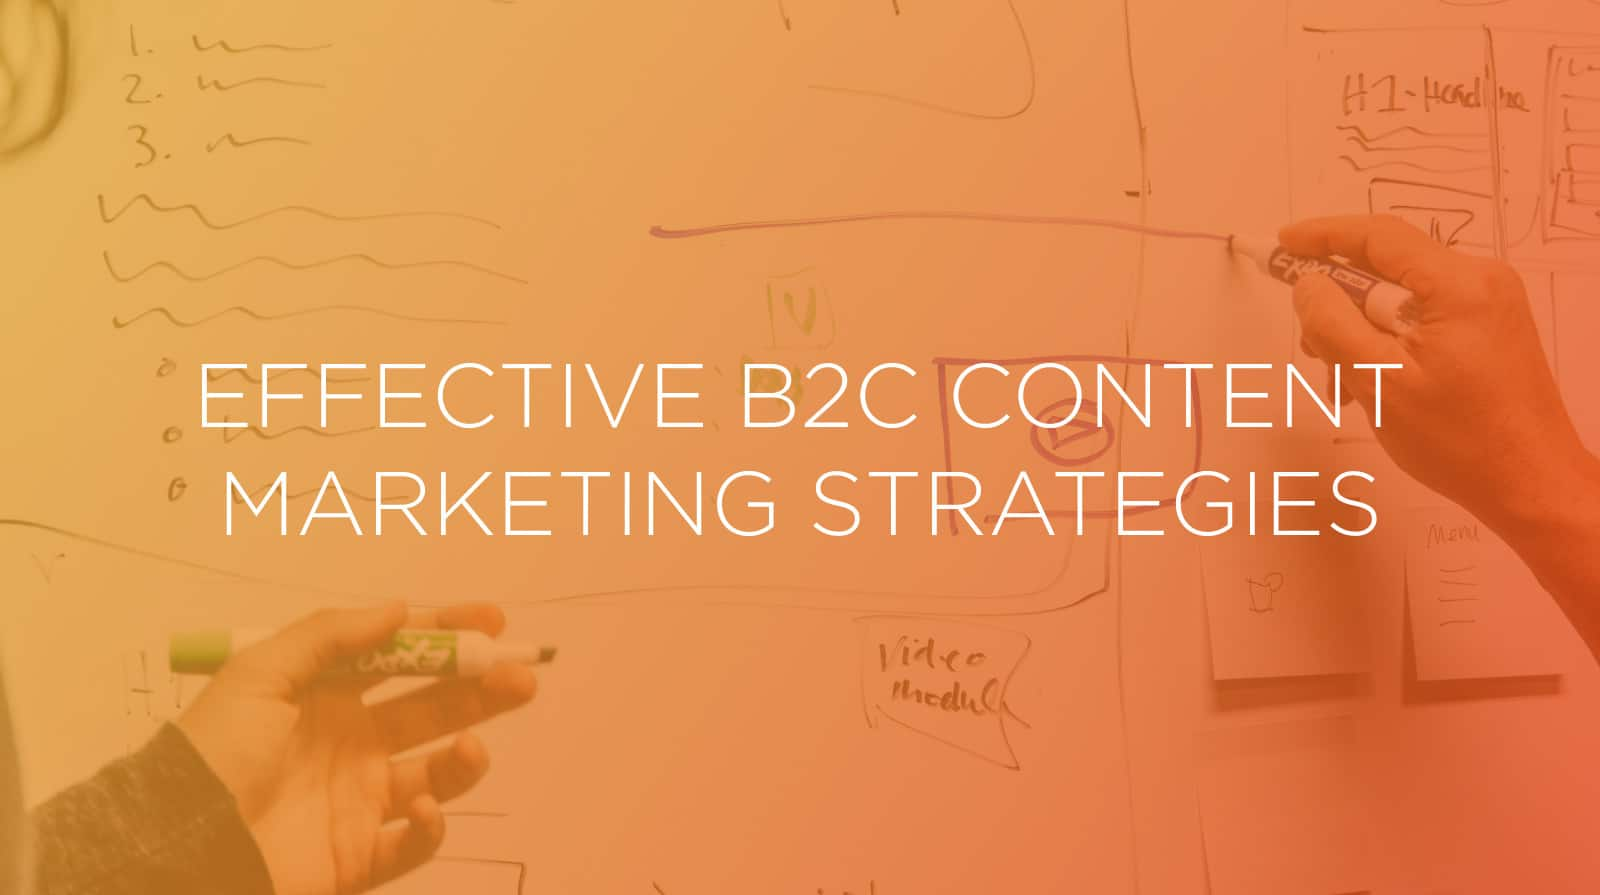 Effective B2C Content Marketing Strategies